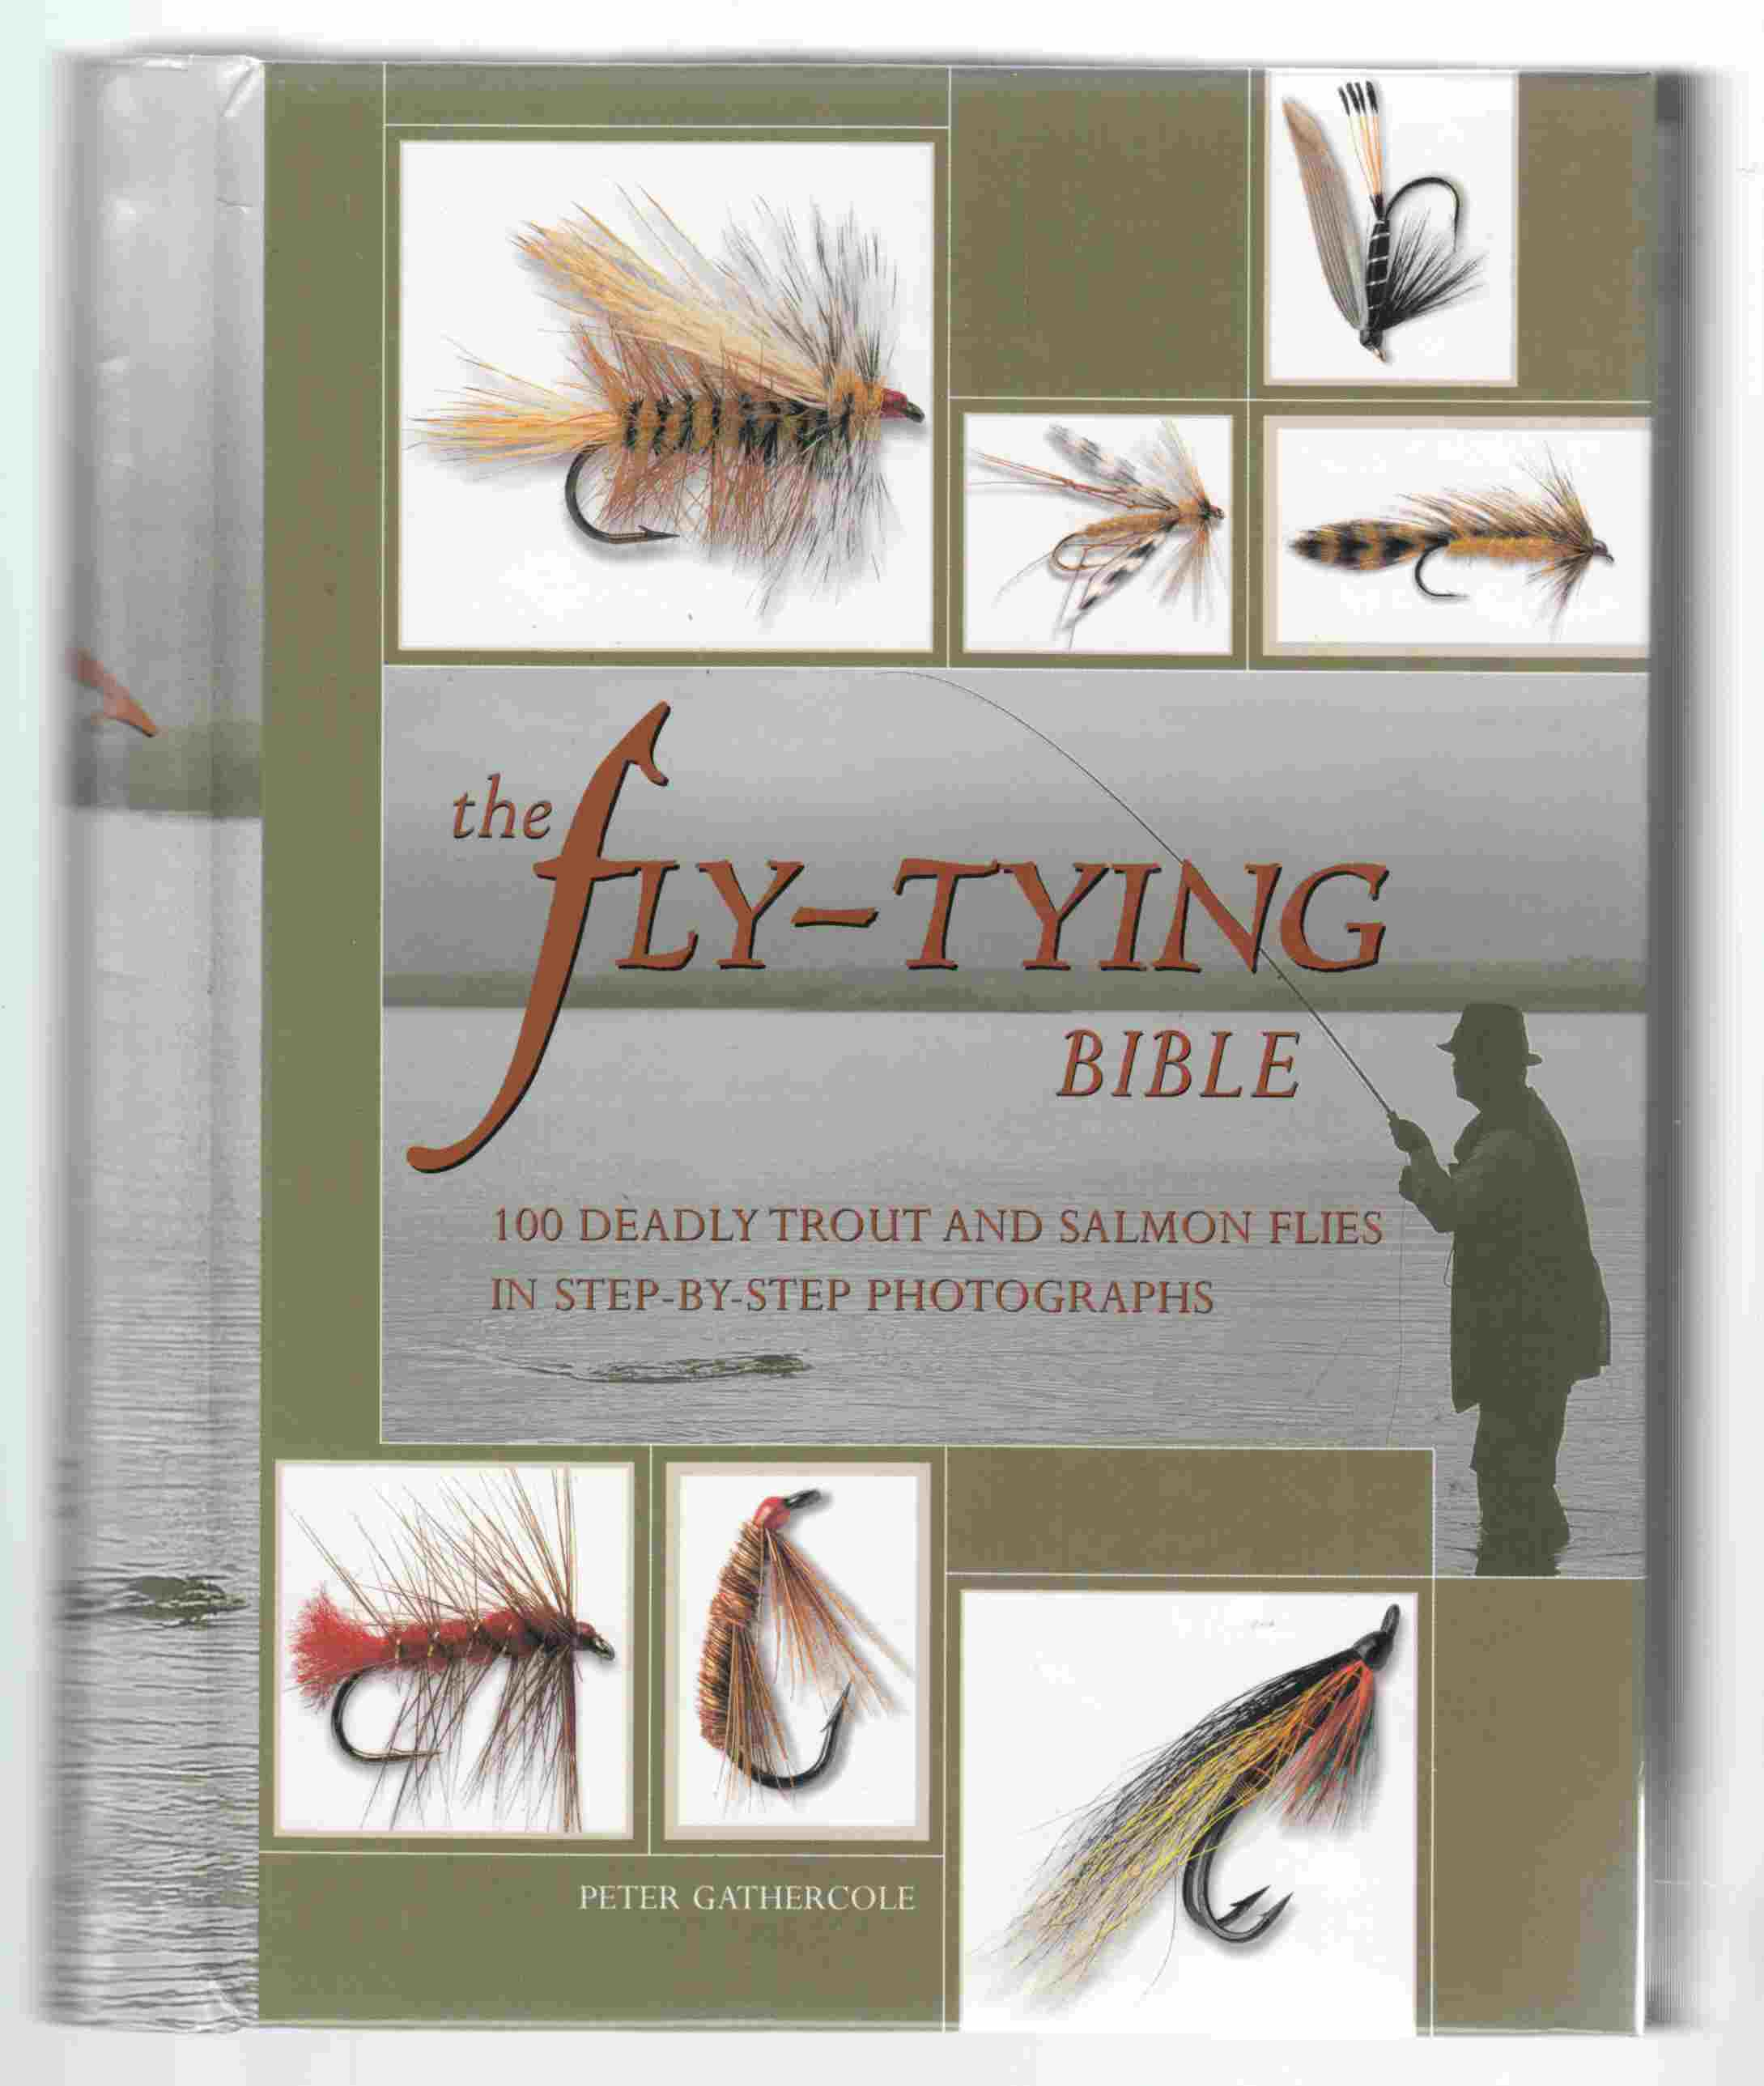 Image for The Fly-Tying Bible 100 Deadly Trout and Salmon Flies in Step-By-Step Photographs